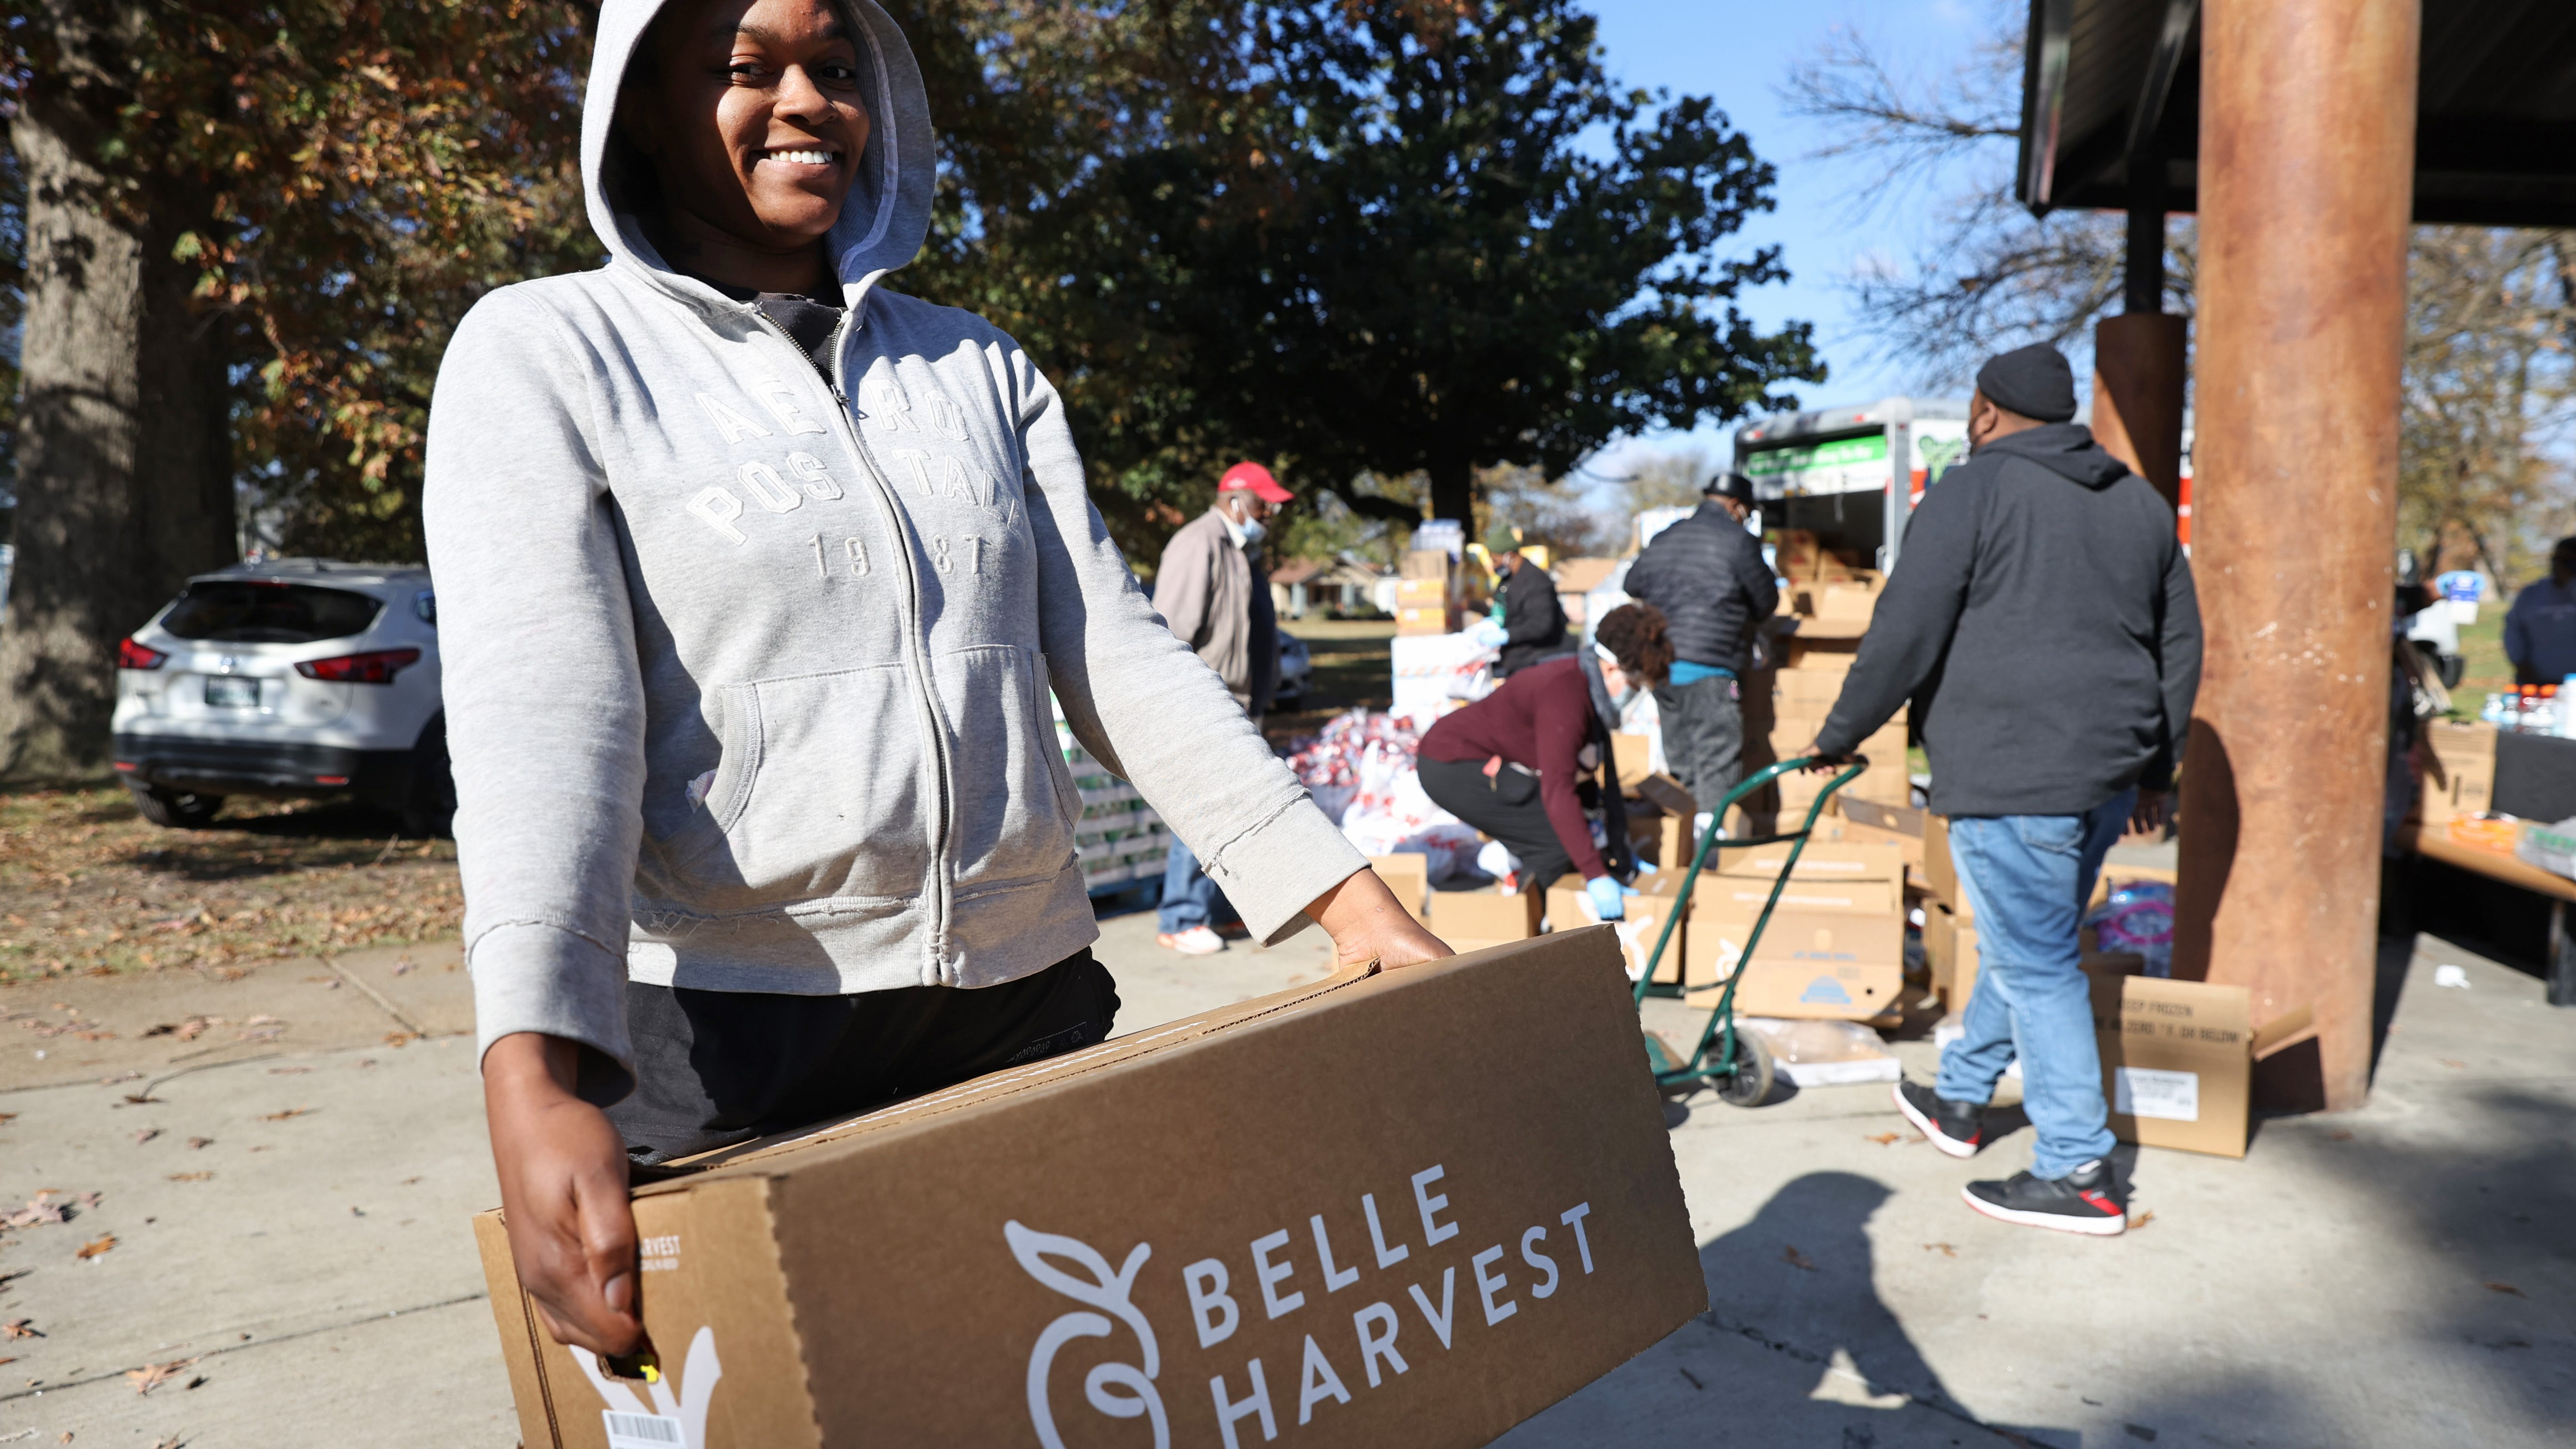 """""""My family is going to need this. I have three kids and my husband has been laid off too, so we've really had it rough all the way around,"""" said Crystal Coble as she was thanking volunteers for her free food supply at Southside Park on Monday, Nov. 23, 2020. Tracy and Keith Millbrook started their own nonprofit, We Are Family. This year, in spite of obstacles posed by COVID-19, the couple is giving away food for the 10th straight year in front of the duplex where they once raised their seven children."""